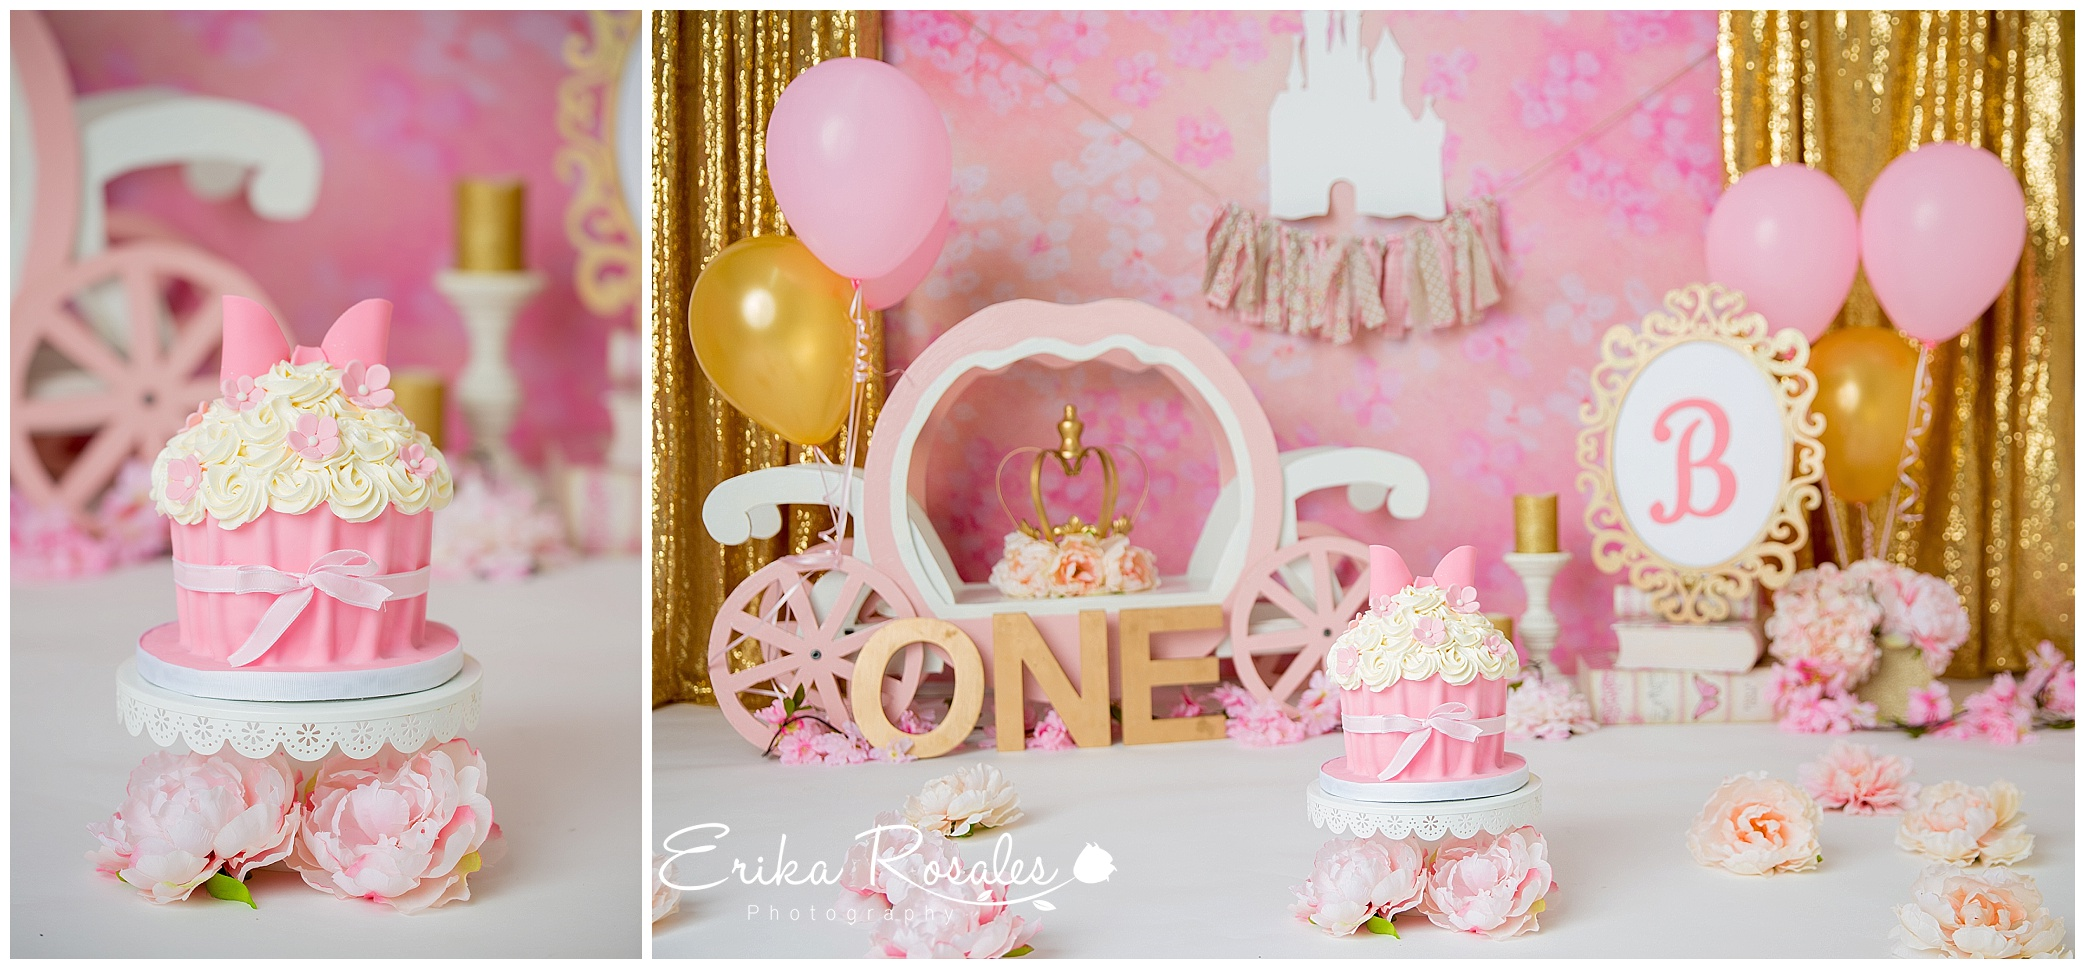 Magnificent Cake Smash Princess Photo Session The Bronx Studio Erika Funny Birthday Cards Online Inifodamsfinfo